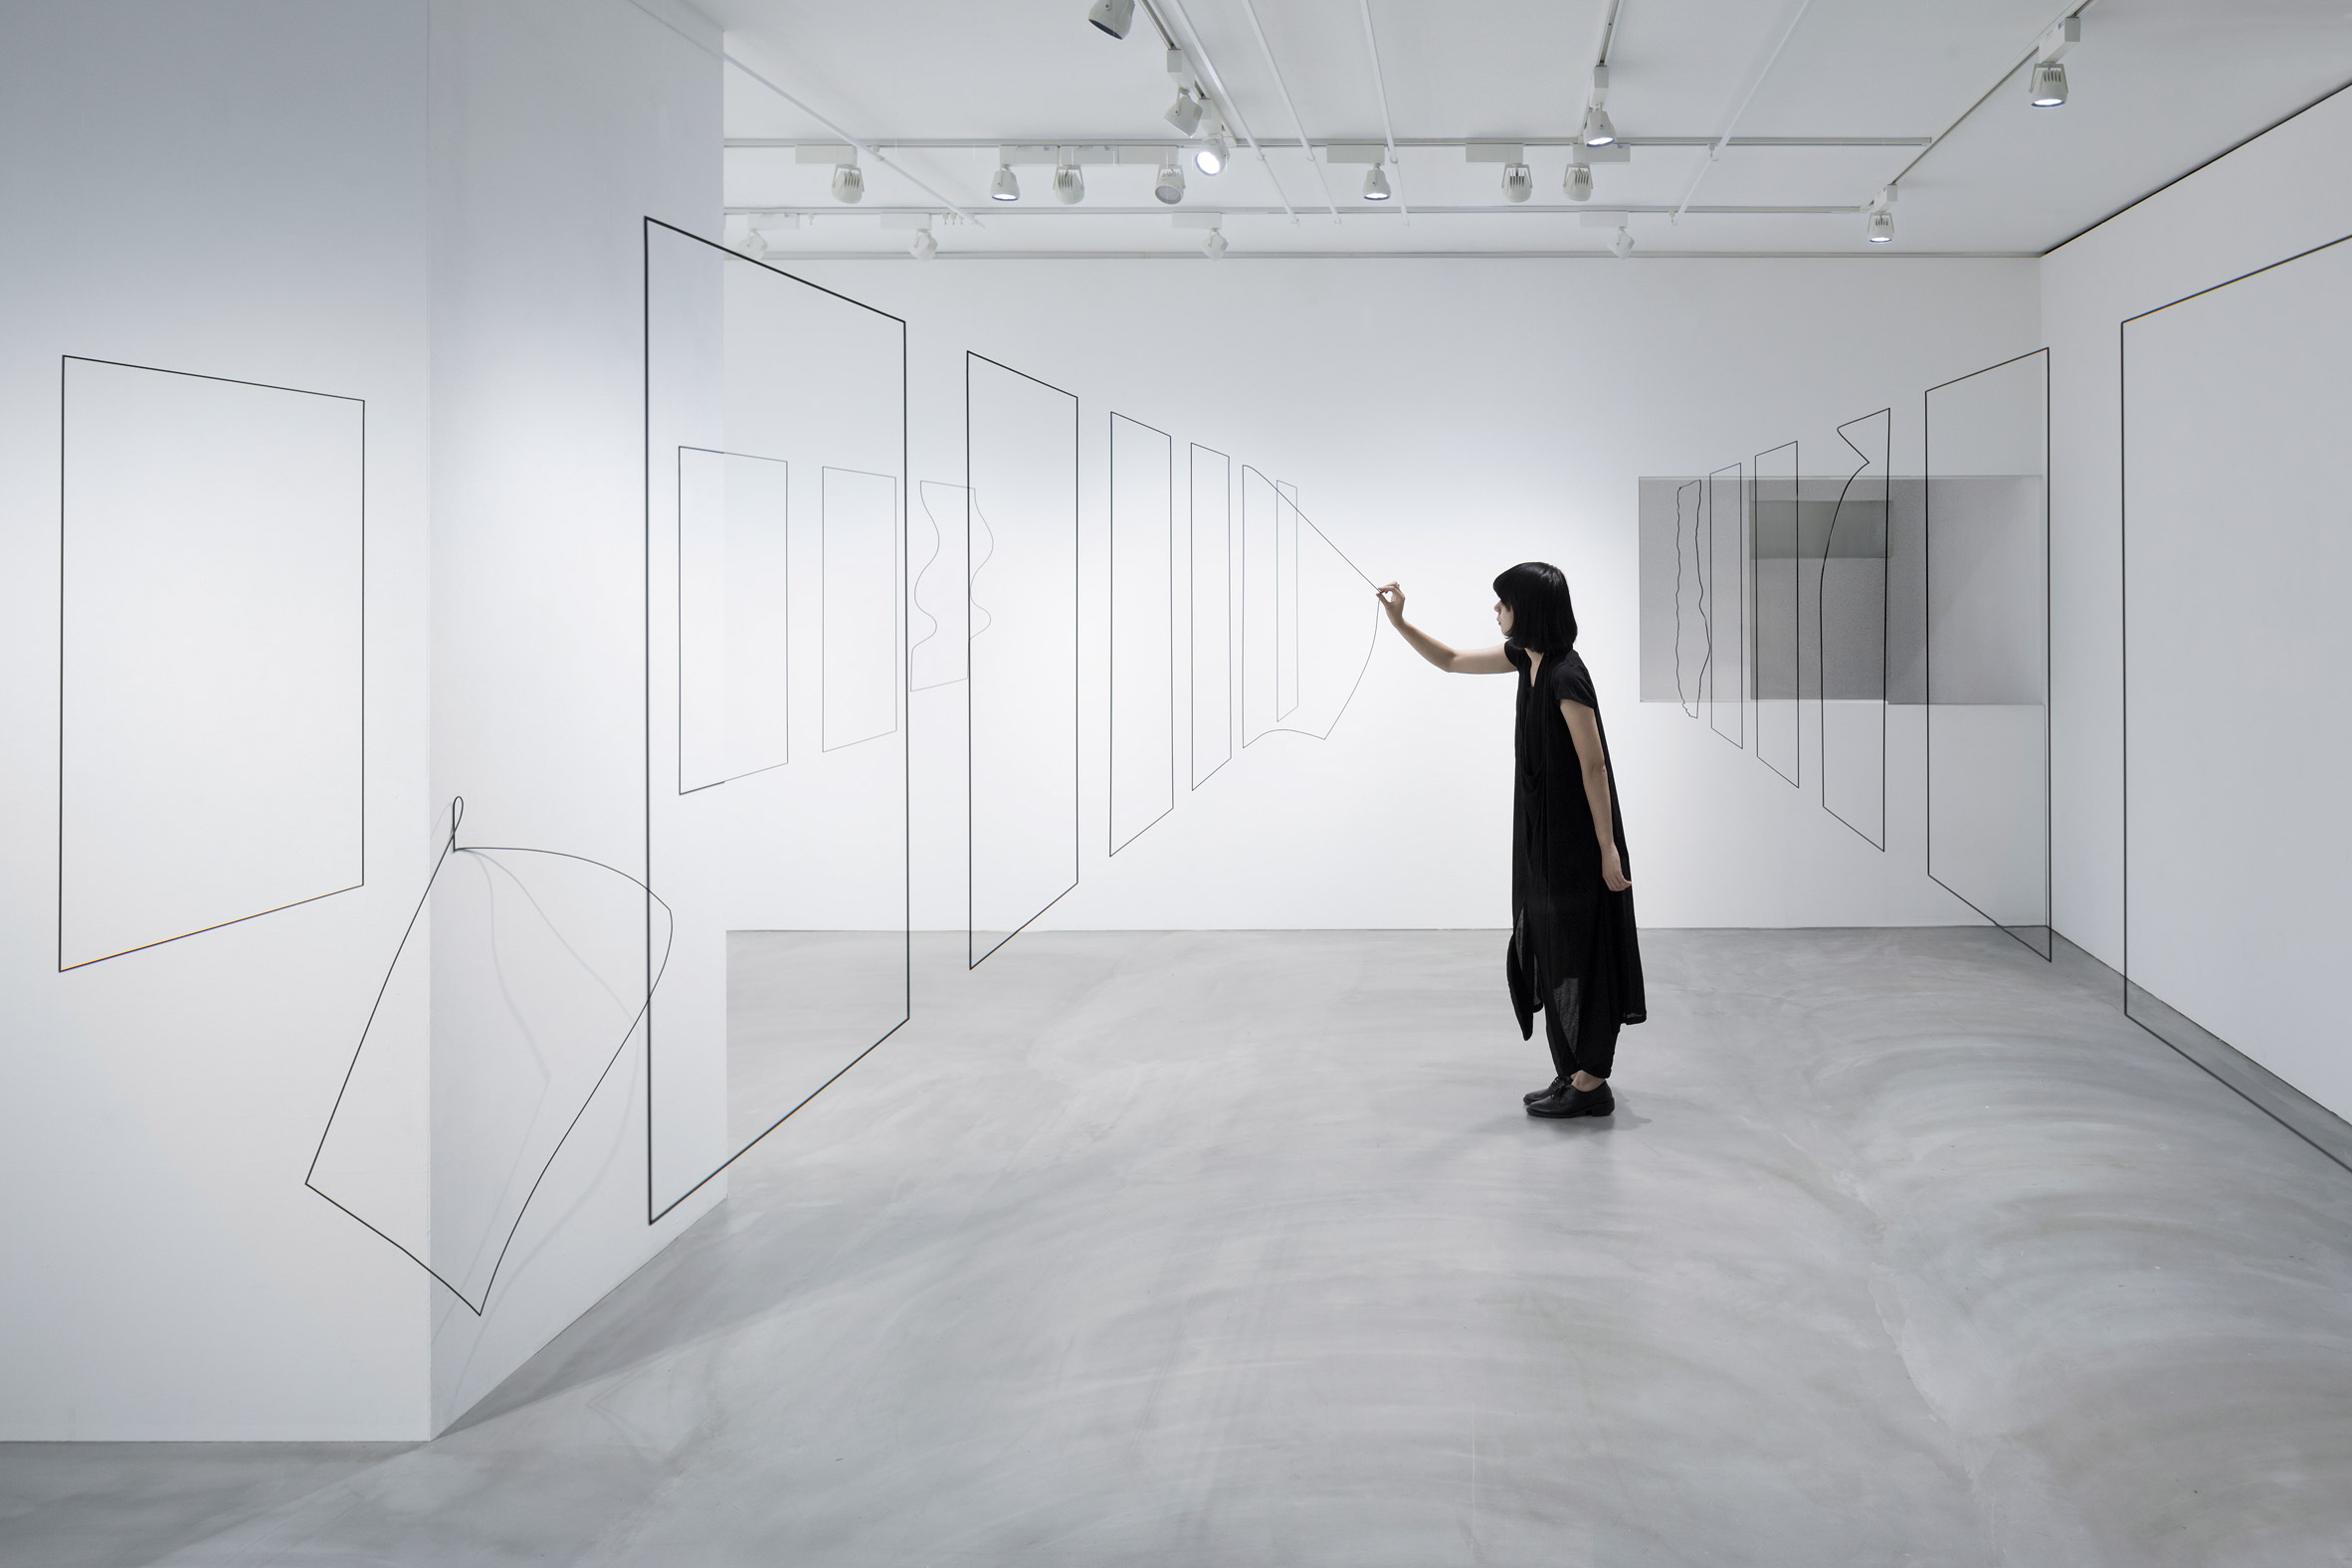 Nendo creates 3D-printed objects that look like the fine outlines of paper